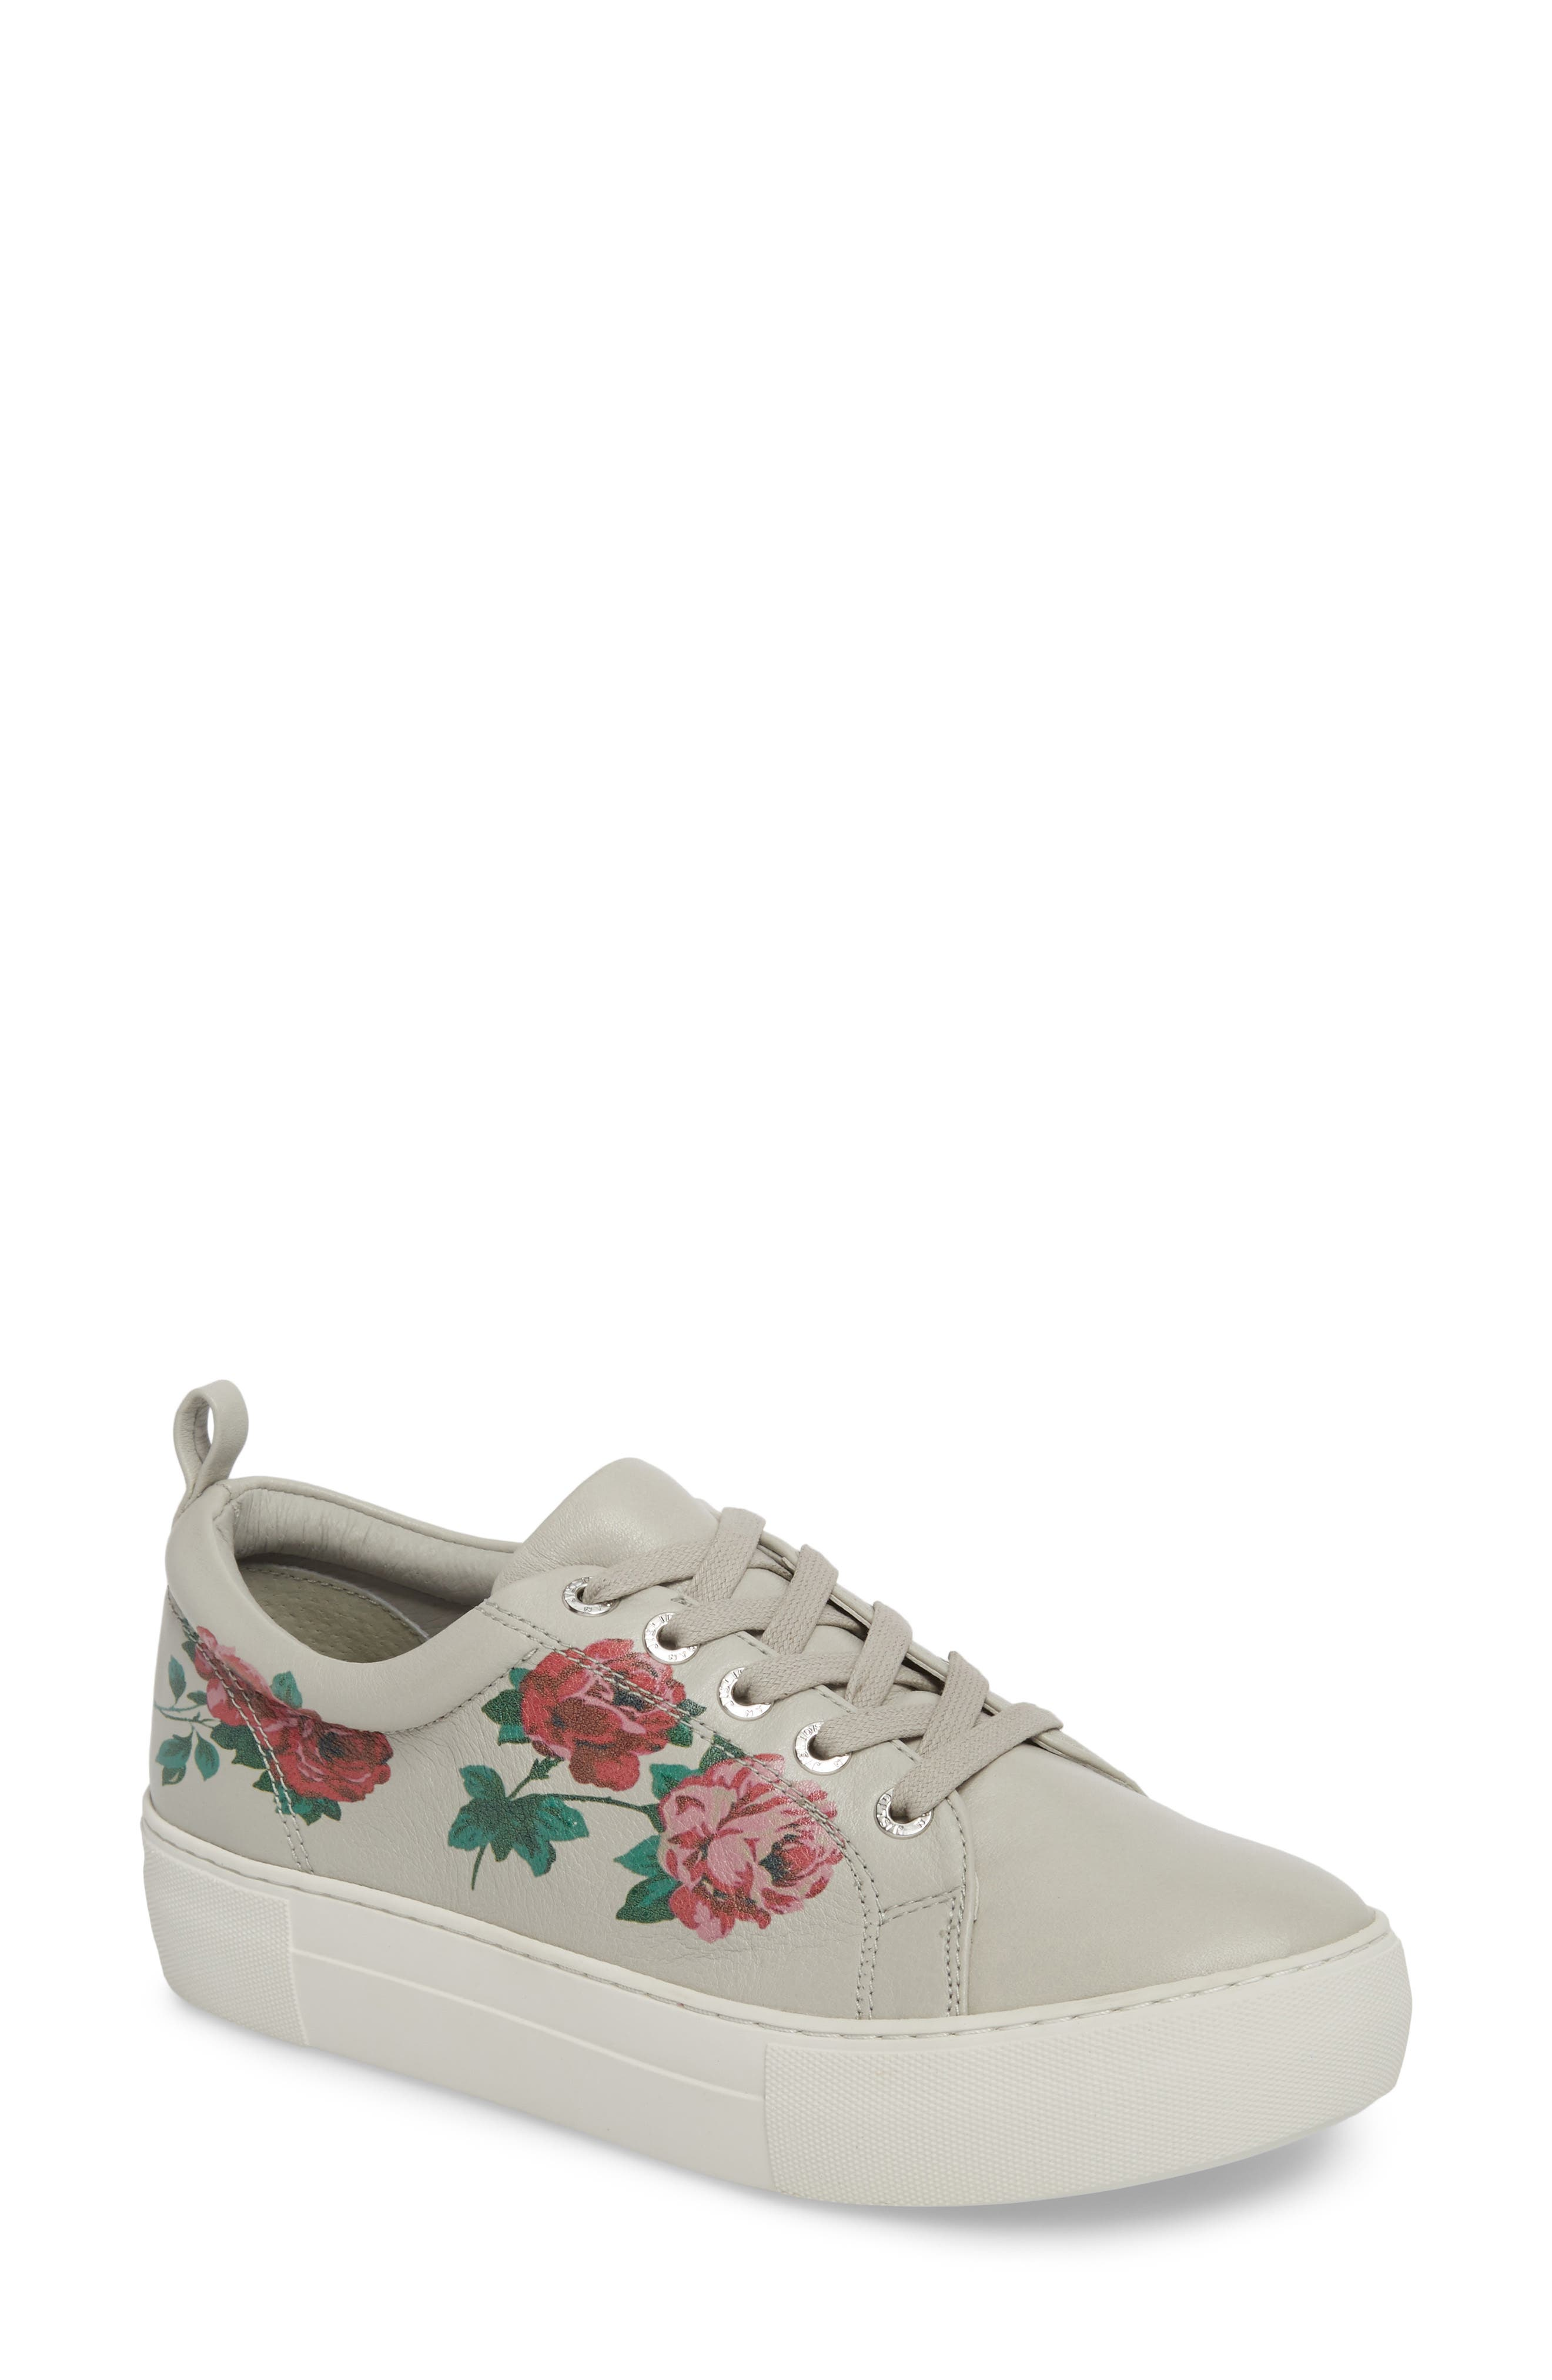 Adel Floral Sneaker,                             Main thumbnail 1, color,